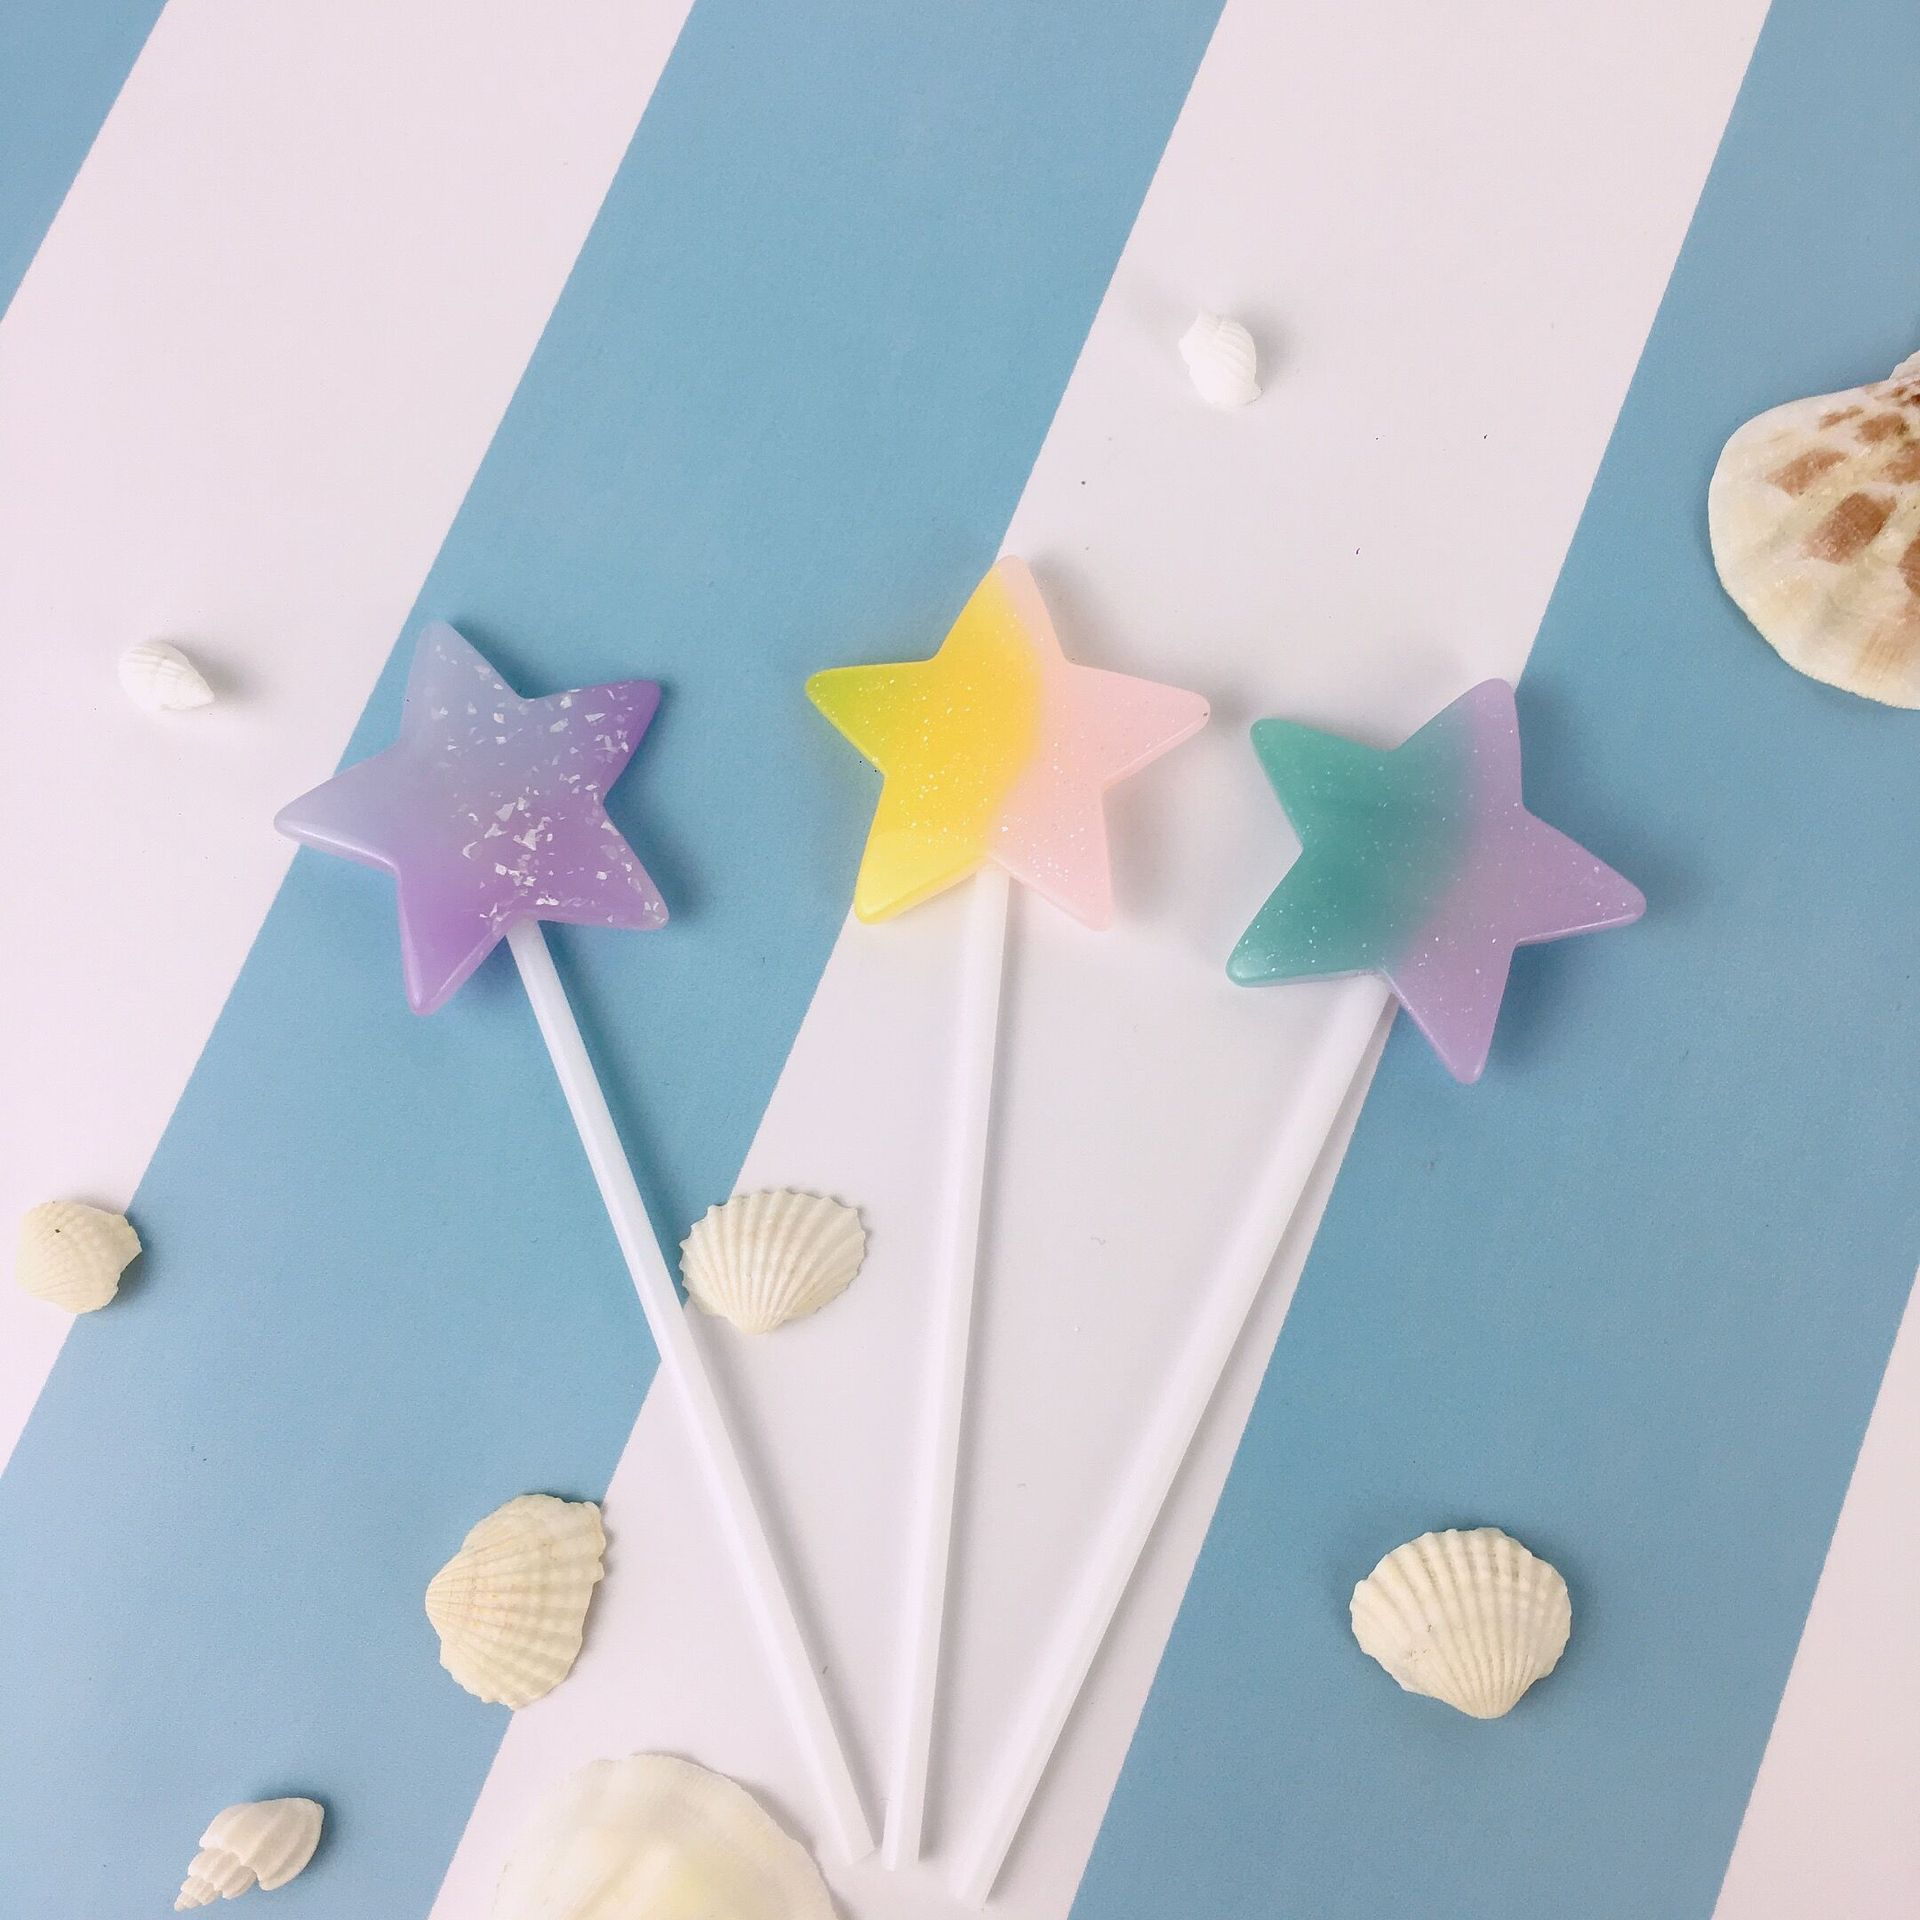 1 Set Summer Ocean Resin Shell Mermaid Theme Star Love Heart Cake Topper Mermaid Decoration Birthday Party Supplies in Cake Decorating Supplies from Home Garden